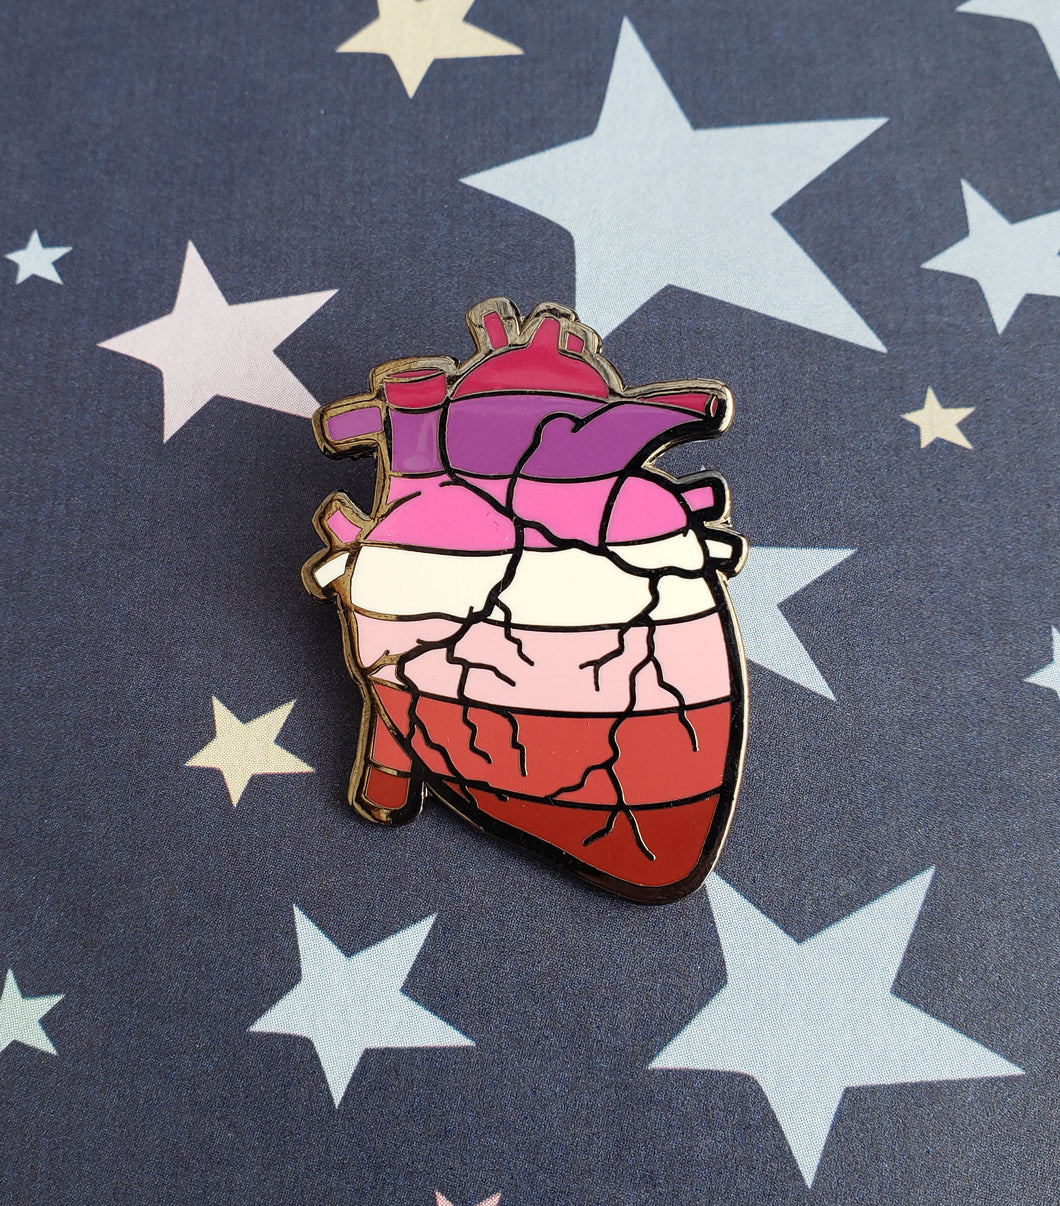 SALE Anatomical Heart Lesbian Pride (7-stripe) Enamel Pin